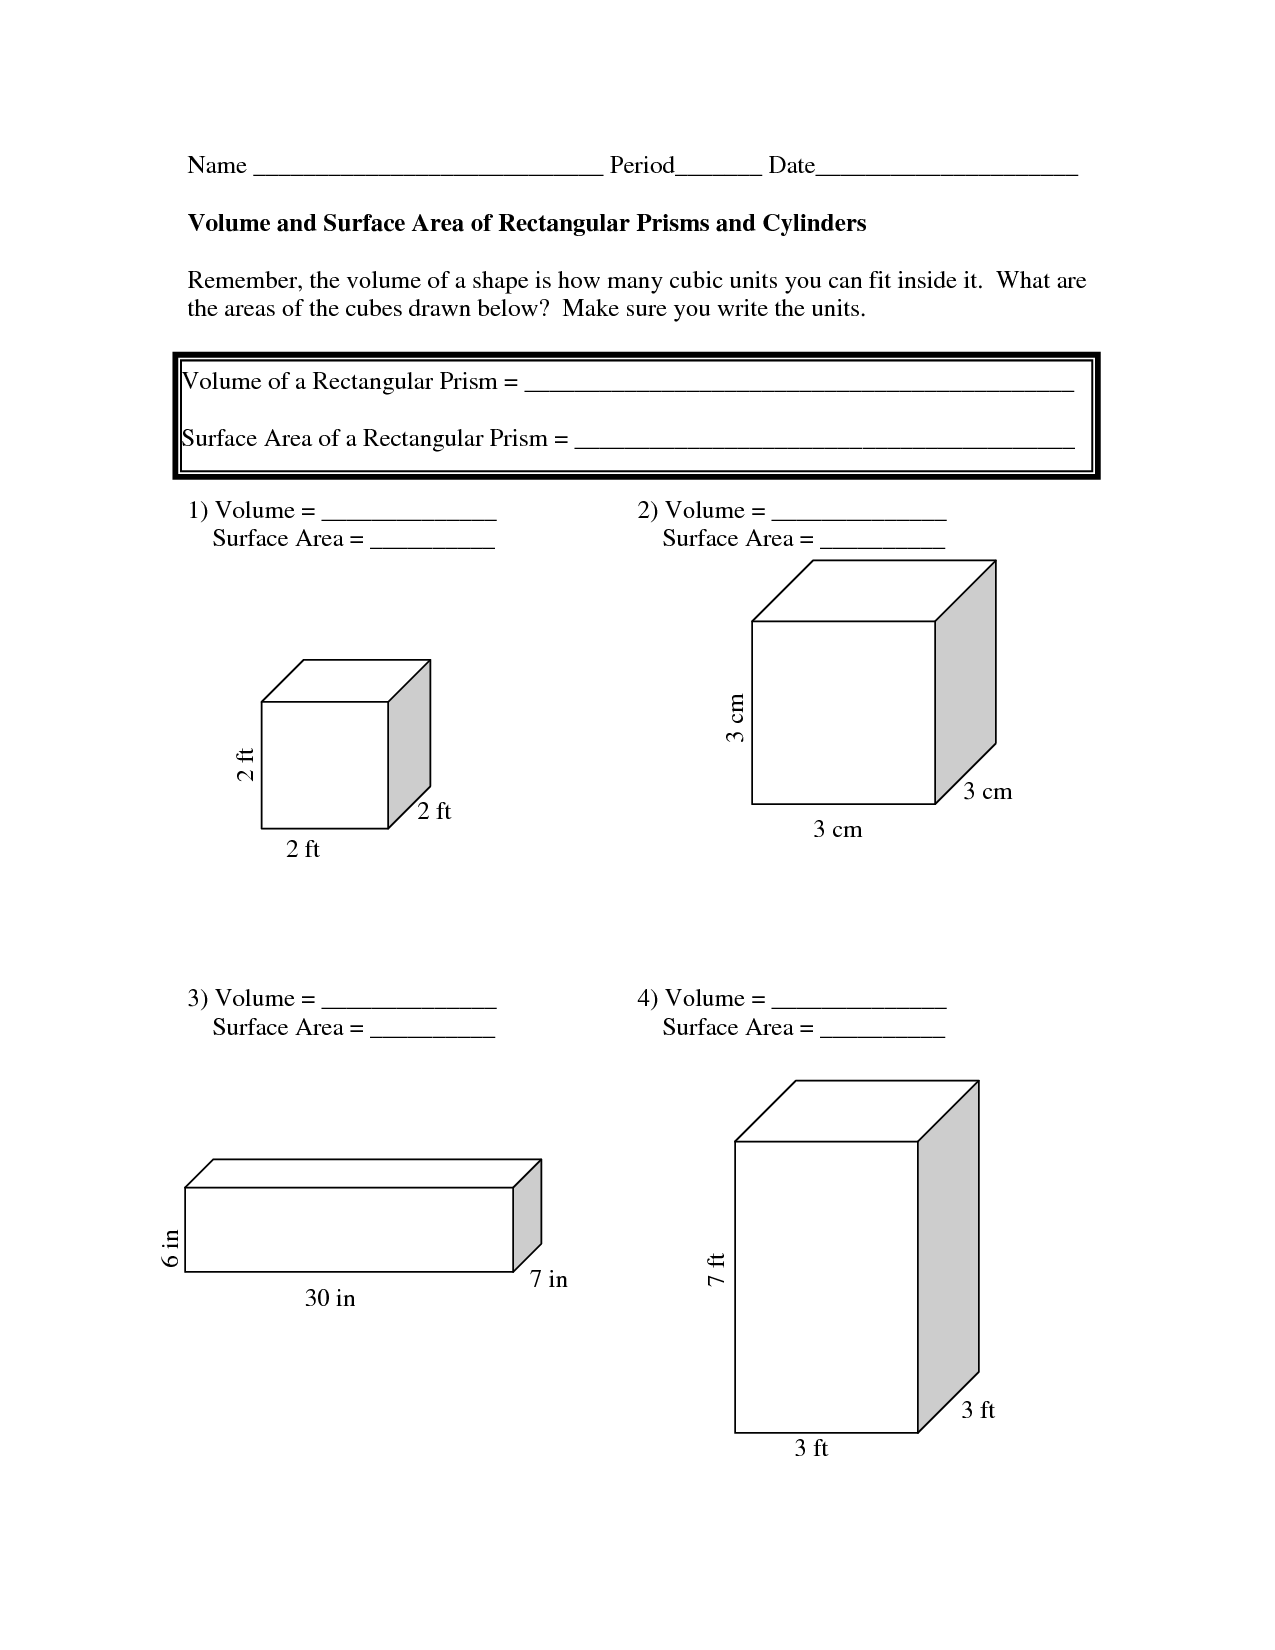 volume and surface area worksheets   Volume and Surface Area Worksheets -  DOC   Area worksheets [ 1650 x 1275 Pixel ]